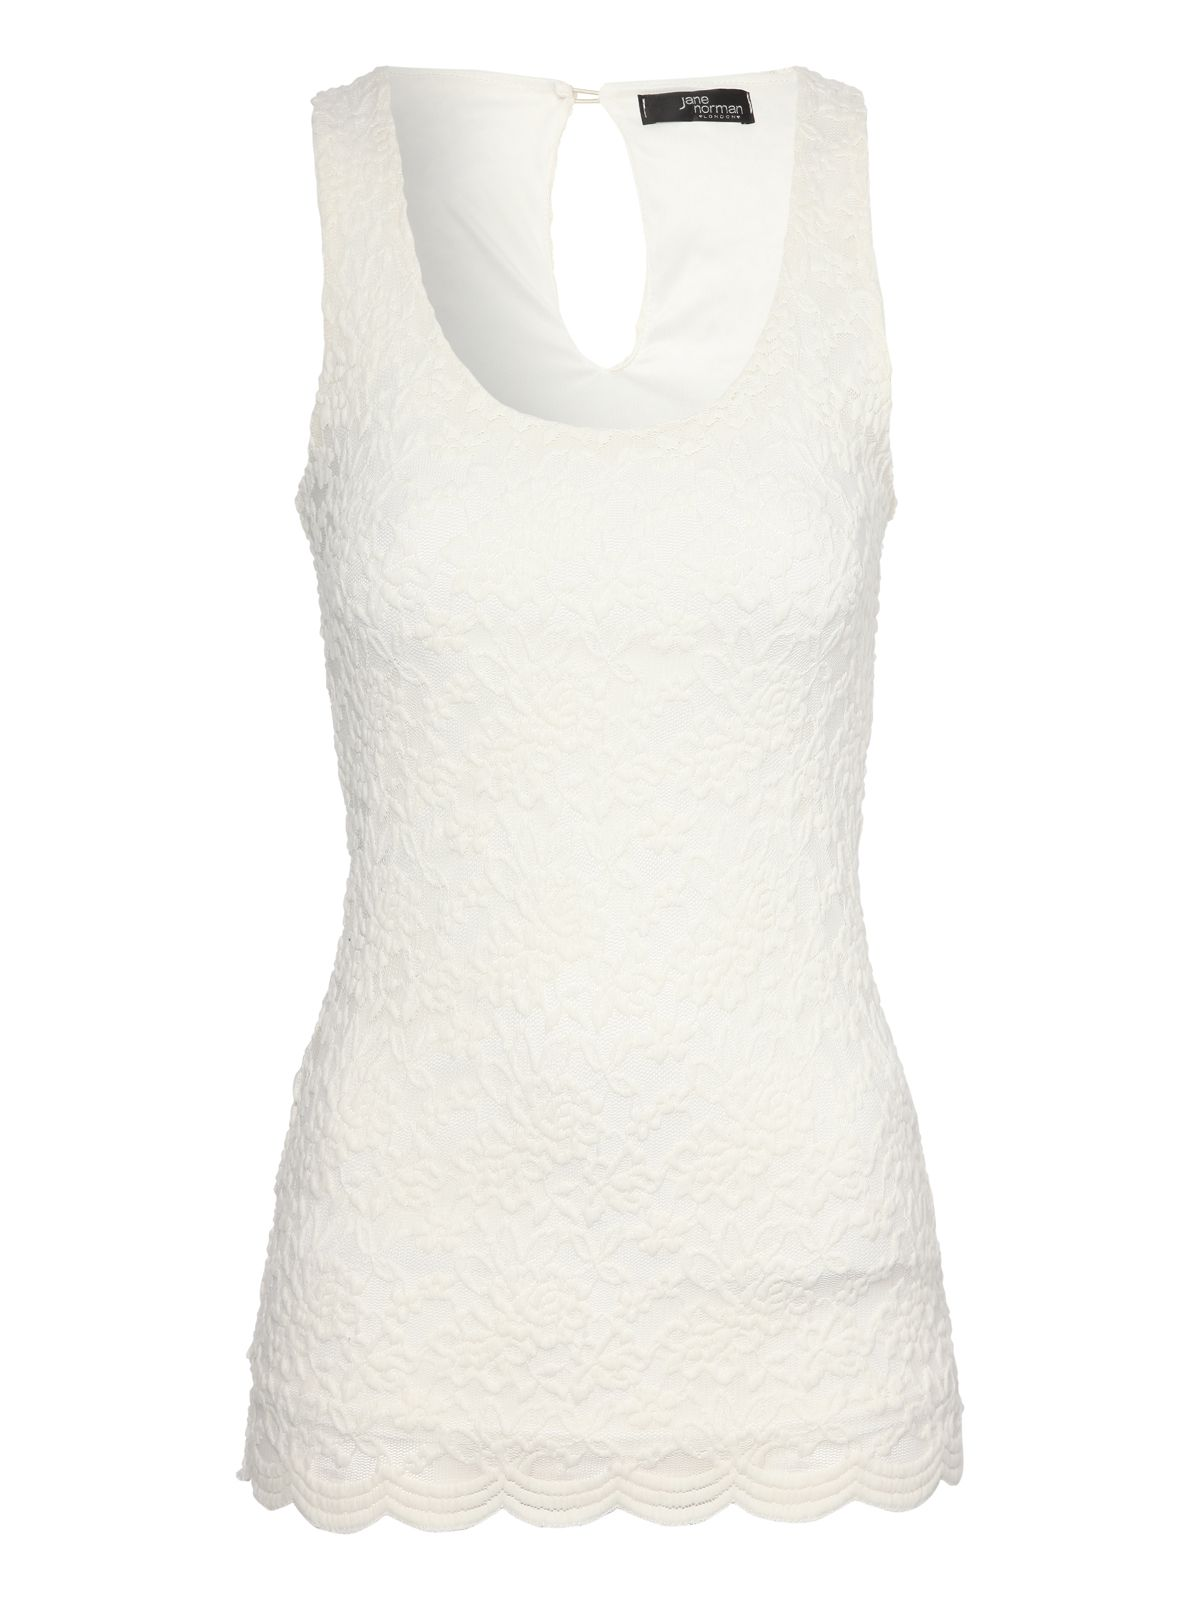 Sleeveless lace vest top